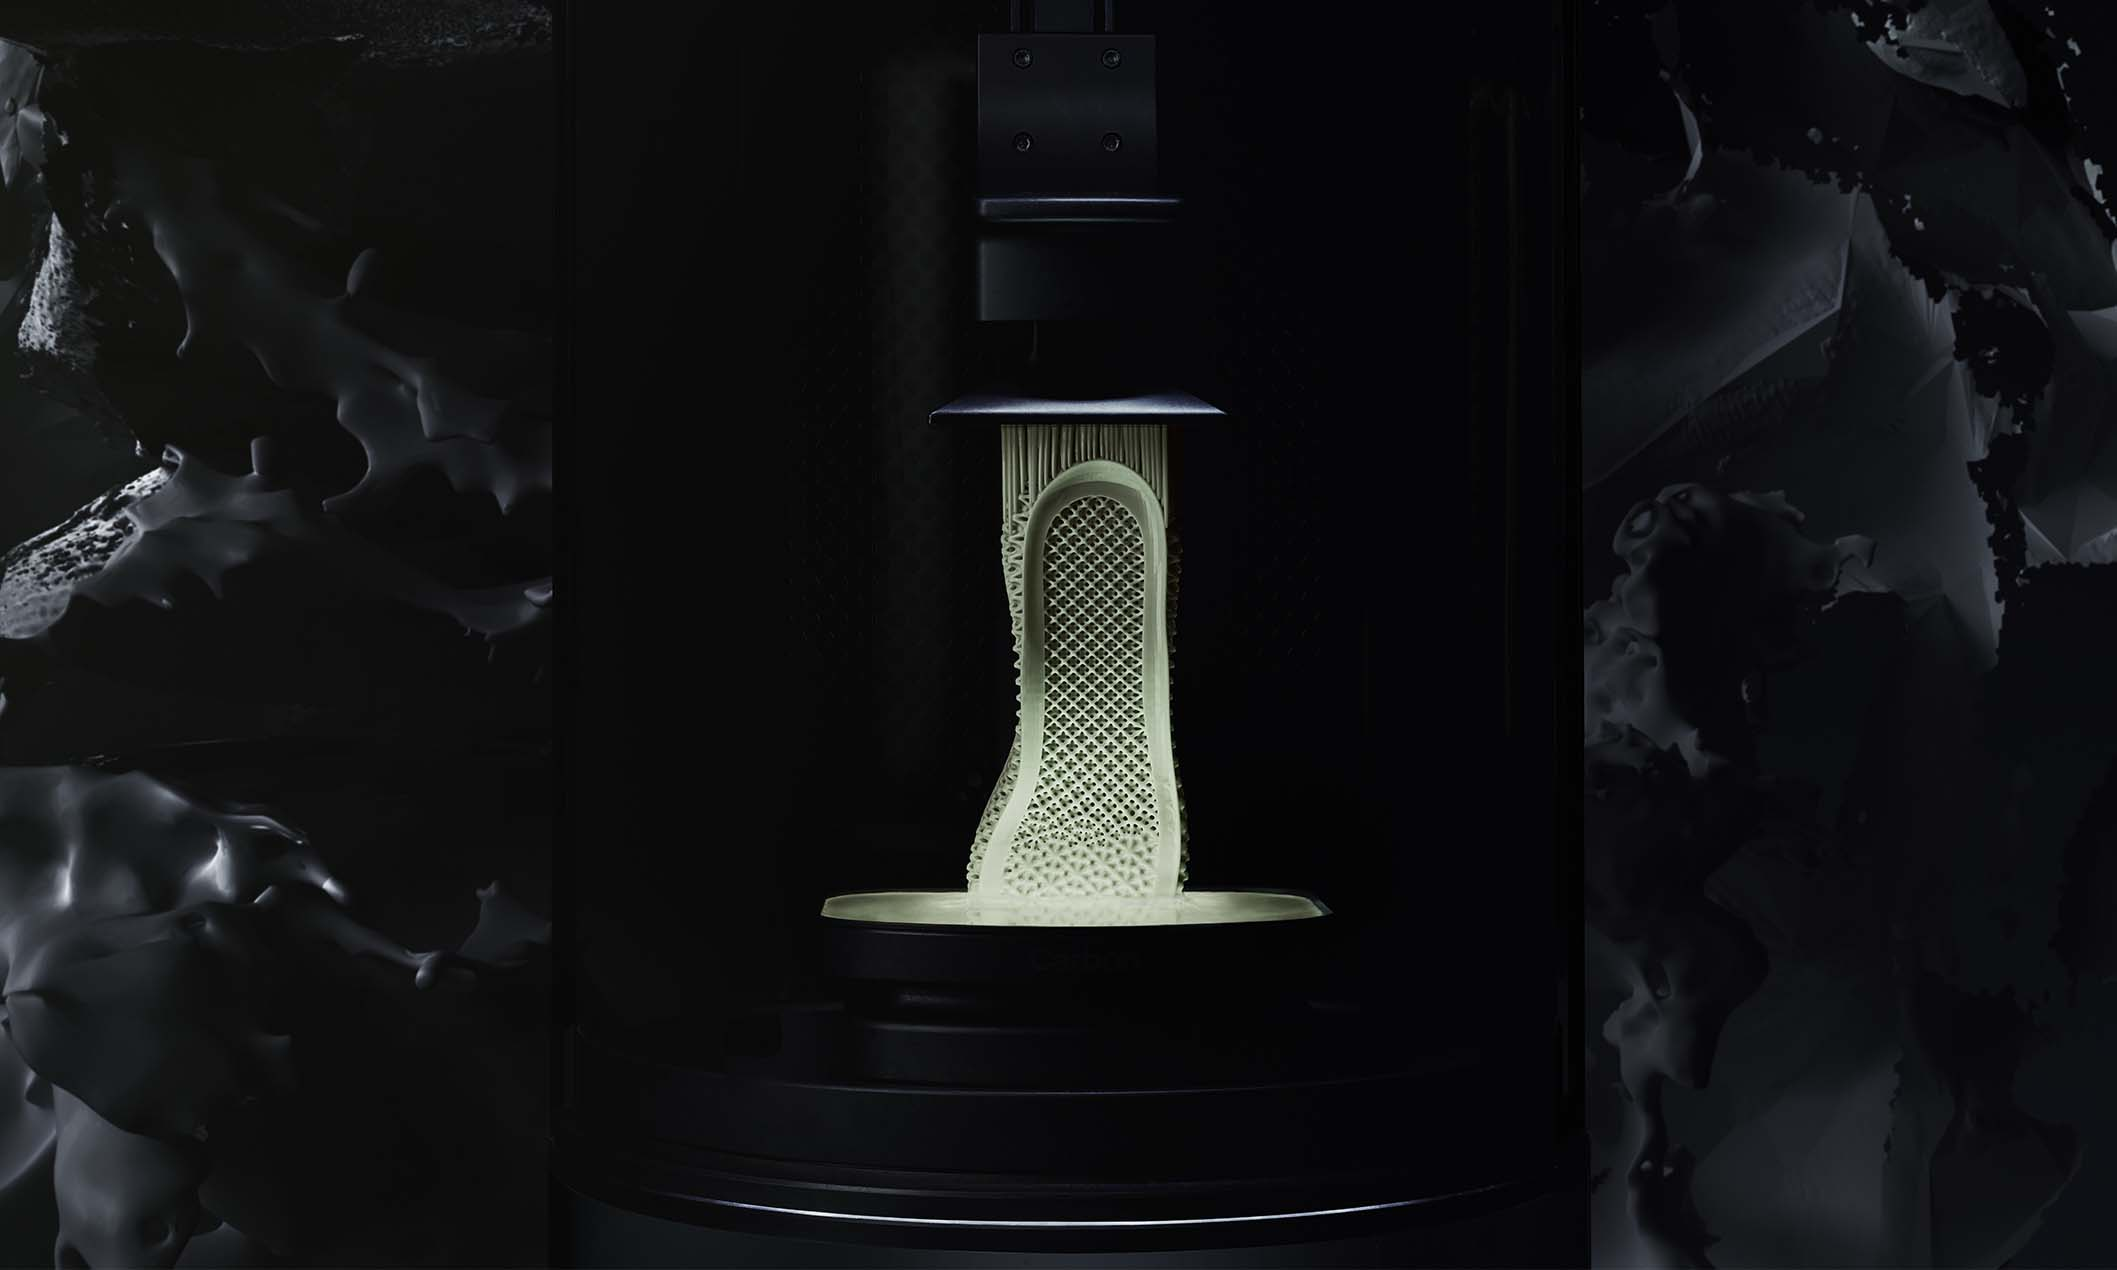 Collaboration Carbon-adidas: 3D Printed Mass-Produced Shoe